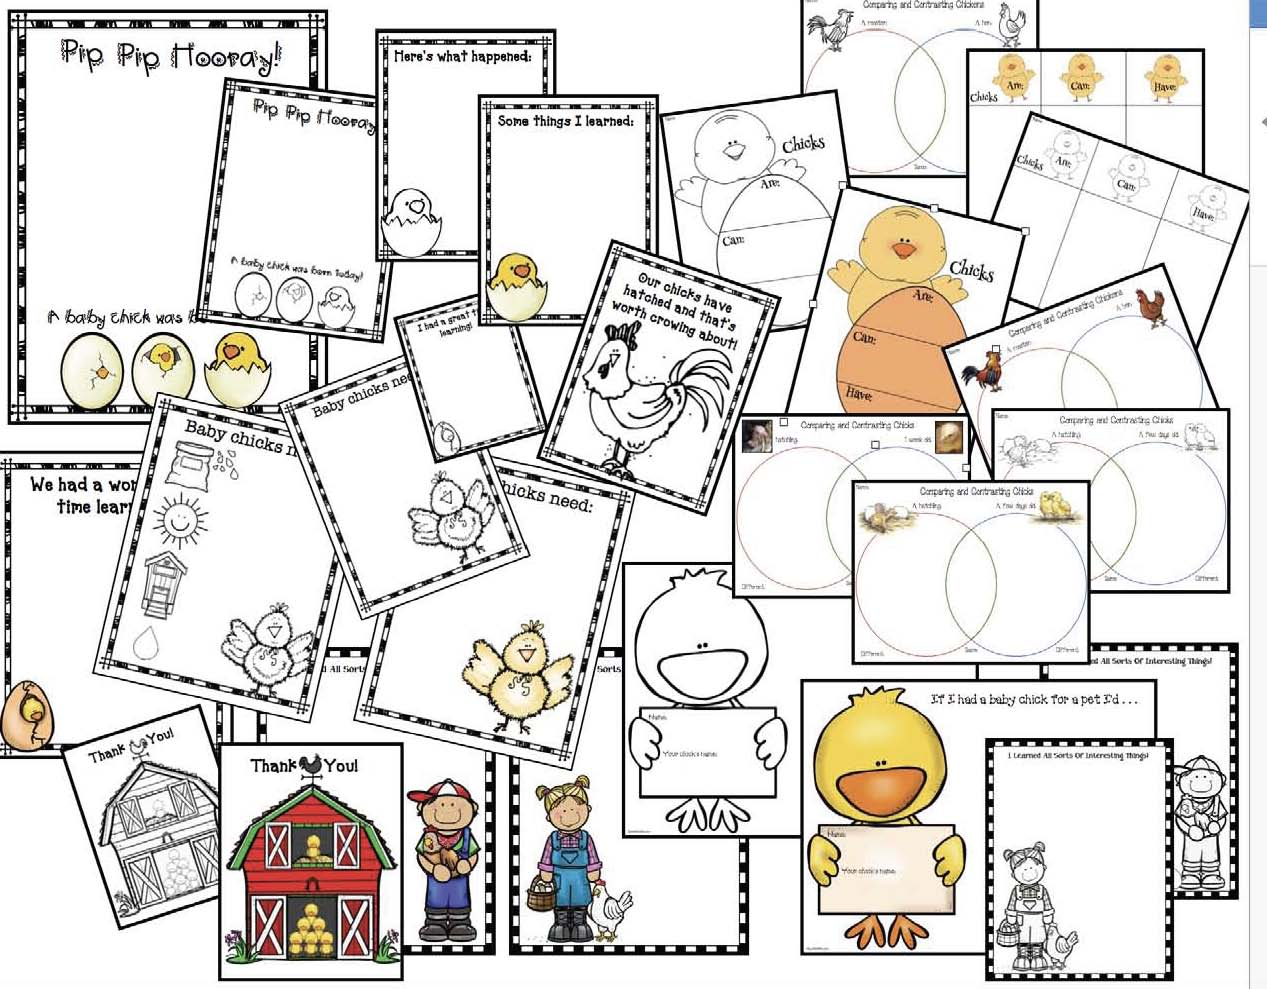 chicken life cycle activities, chicken crafts, chick hatching activities, chick hatching photographs, chicken games, chick games, life cycle of a chicken posters, life cycle of a chick games, life cycle of a chick crafts